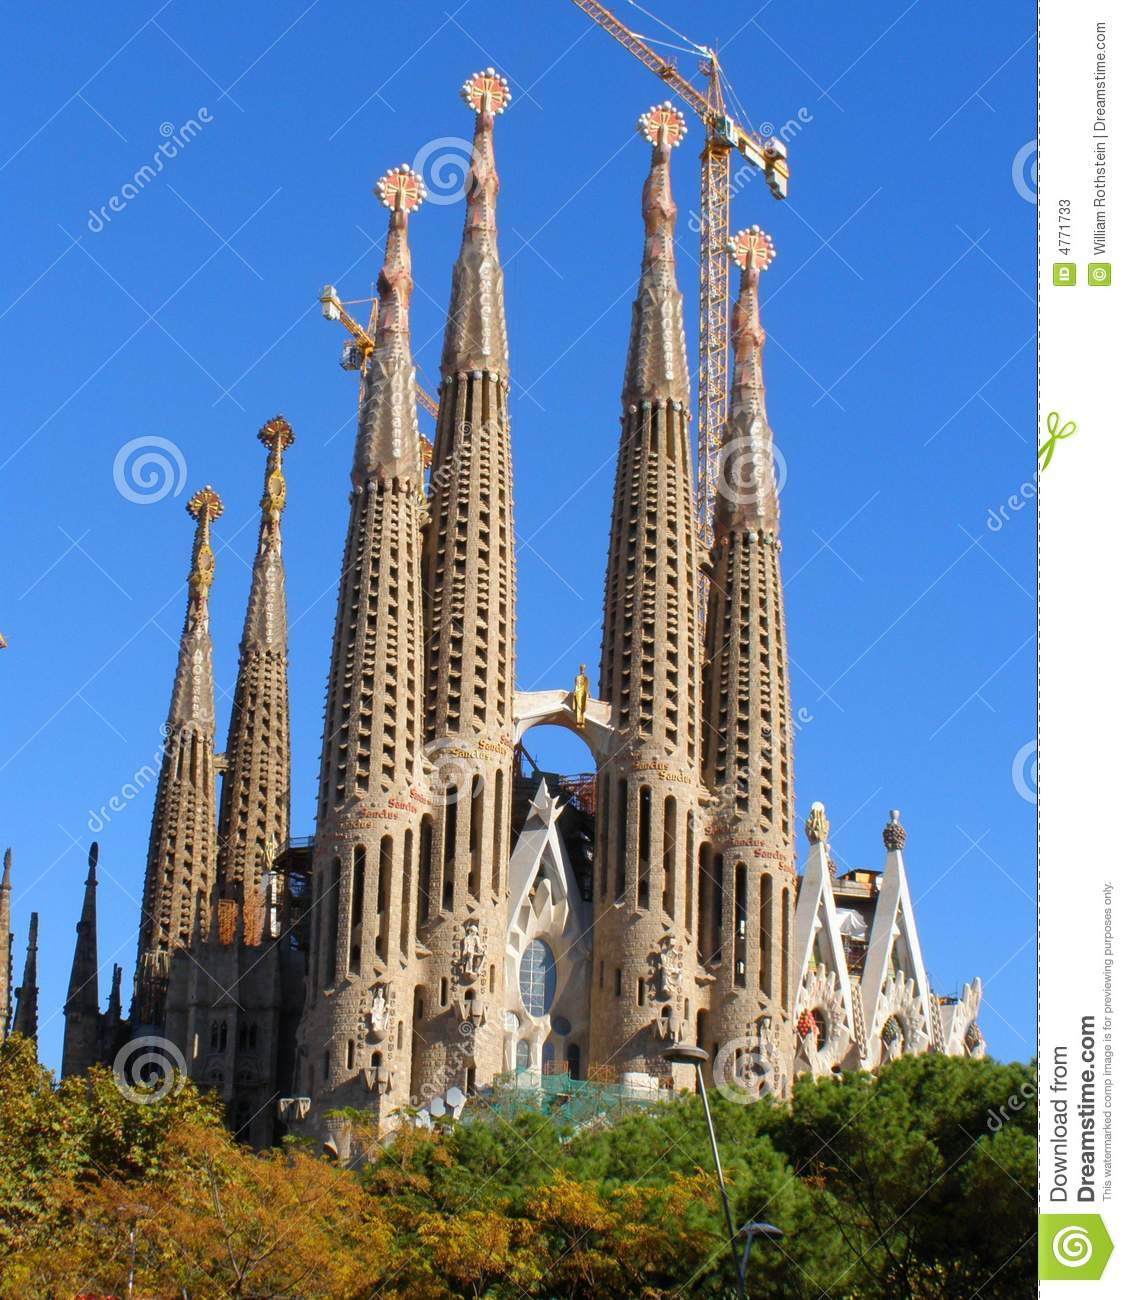 sagrada familia barcelona stockbild bild von kirche 4771733. Black Bedroom Furniture Sets. Home Design Ideas